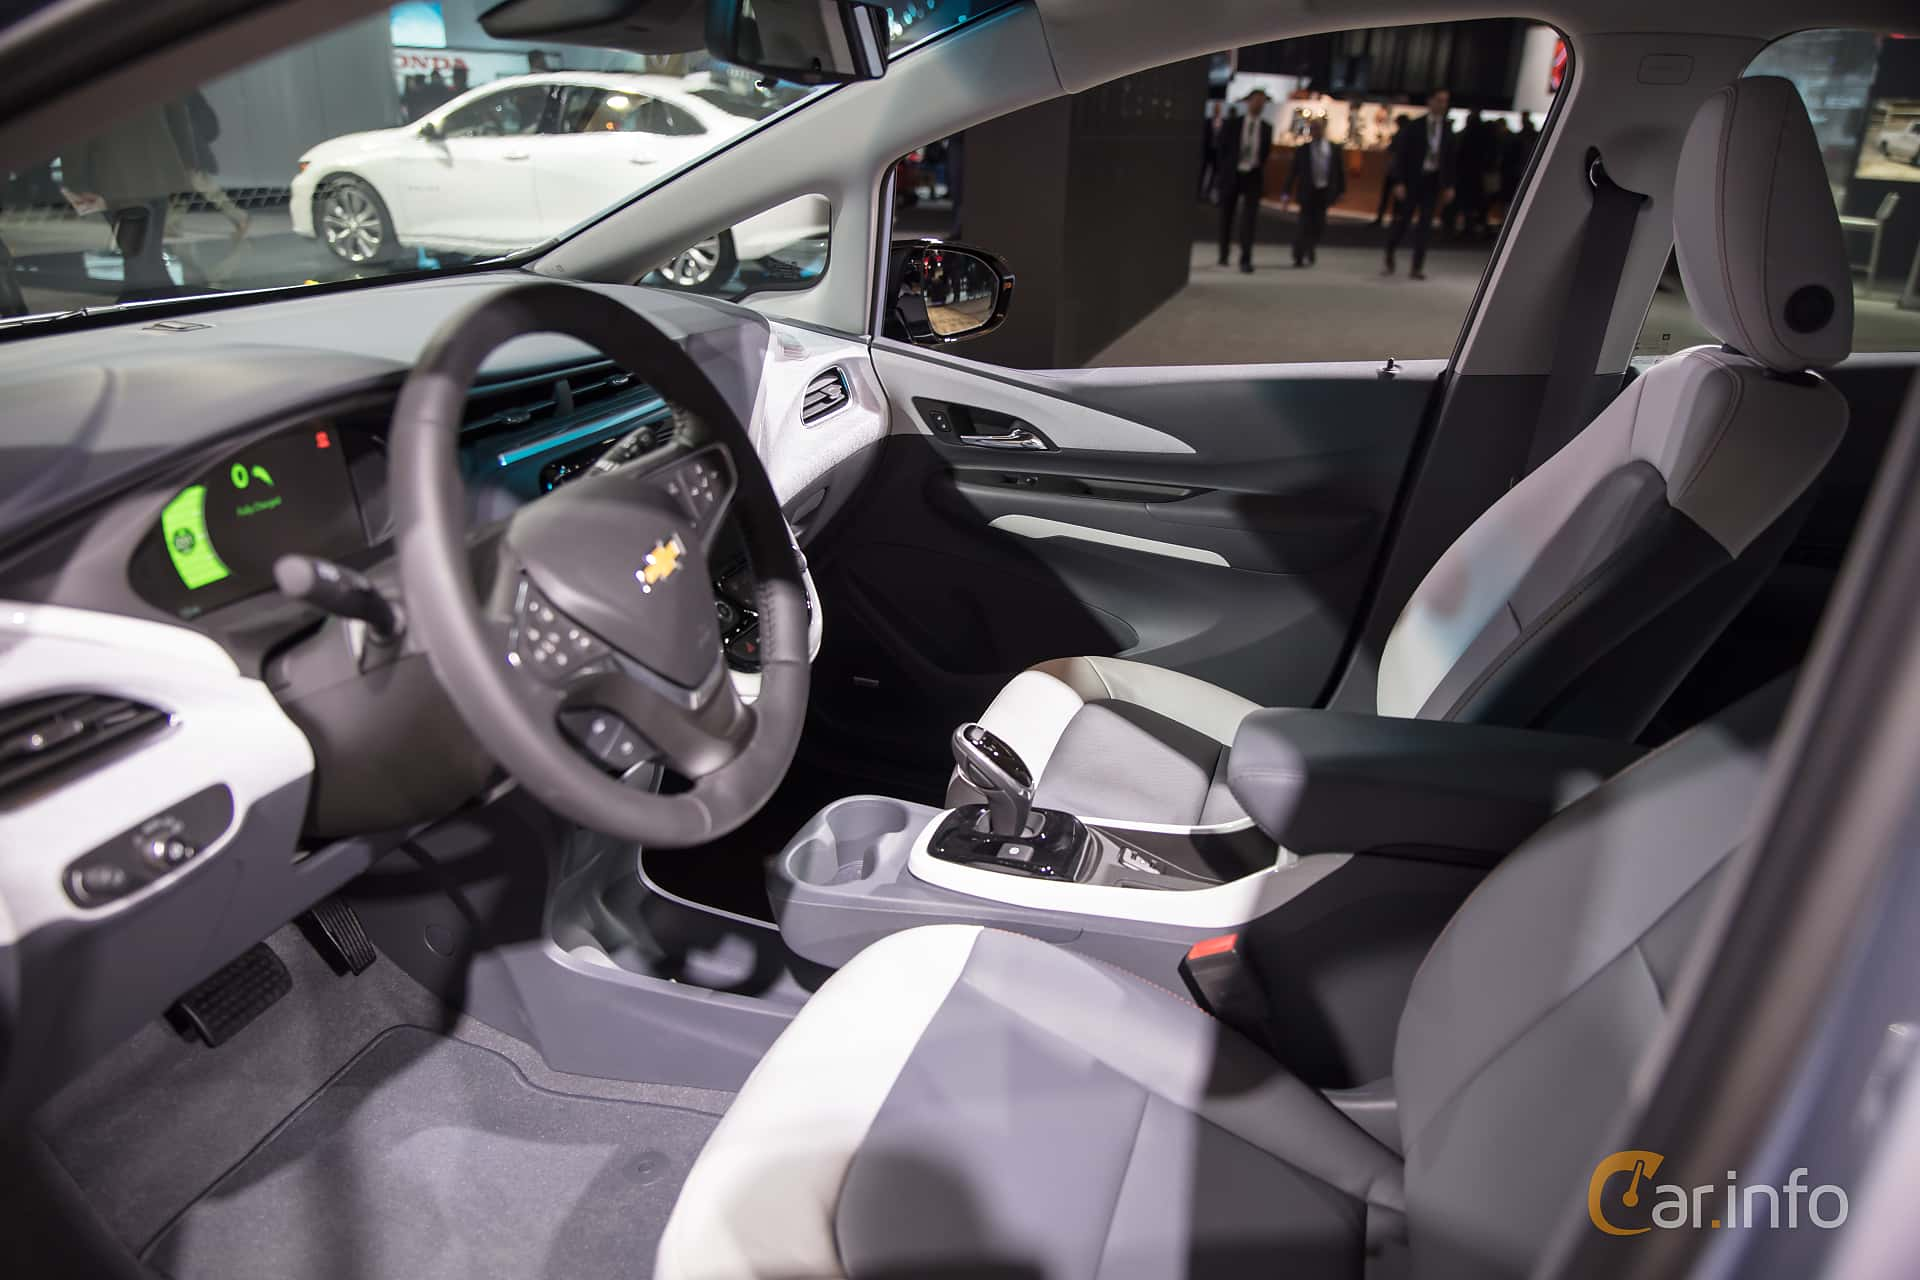 Interior of Chevrolet Bolt 60 kWh Single Speed, 204ps, 2017 at North American International Auto Show 2018